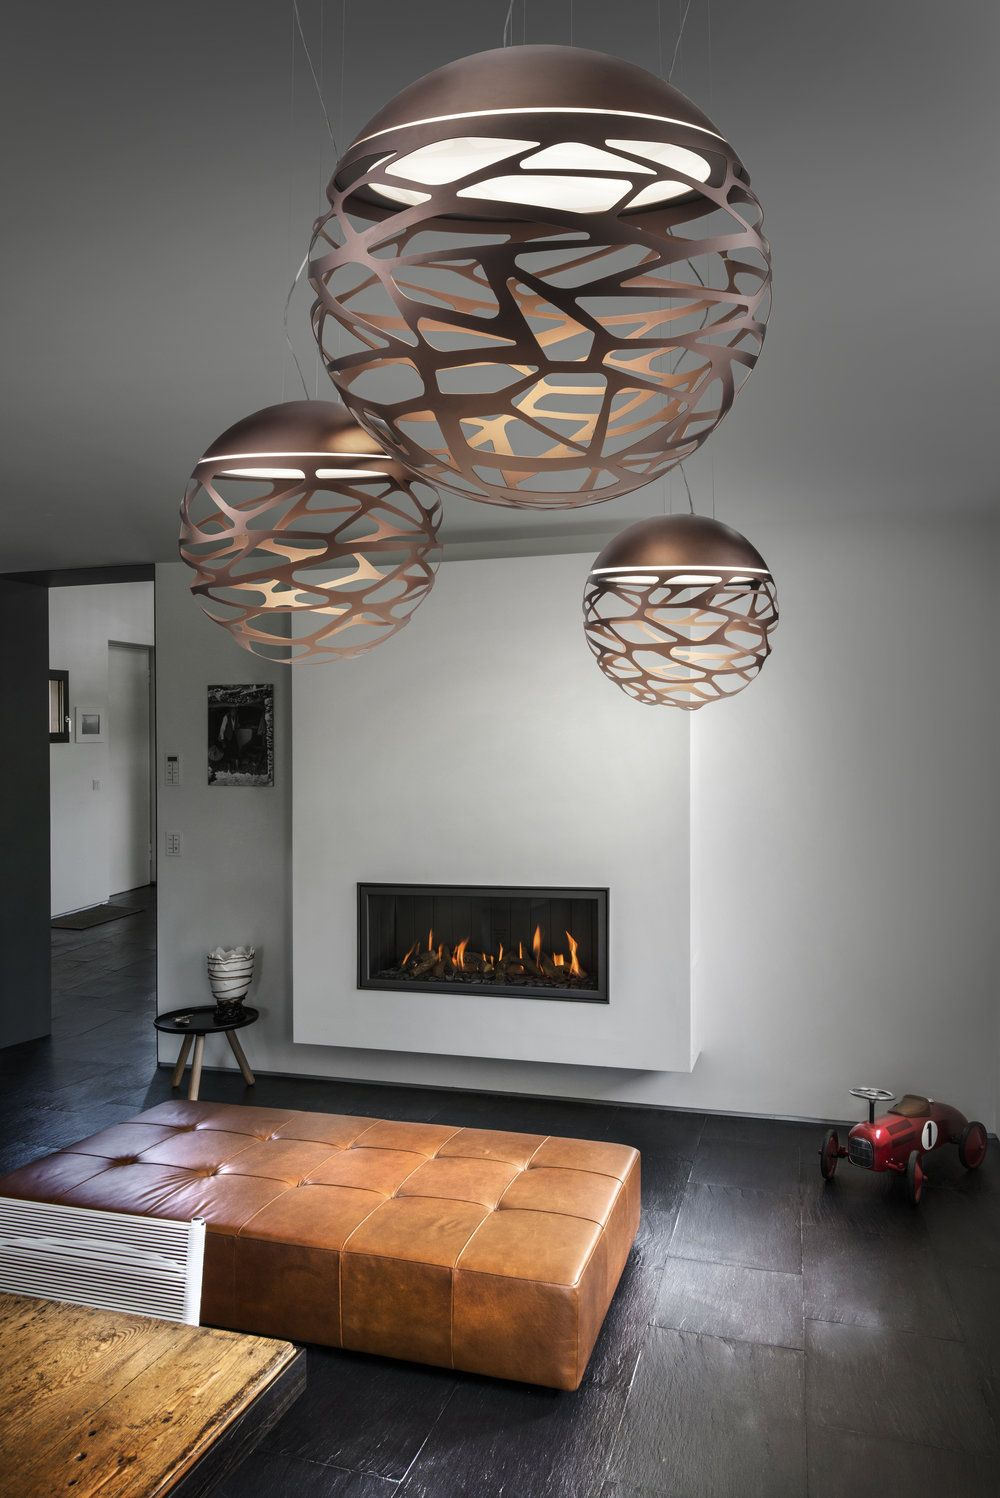 Kelly Sphere in 2020 | Contemporary ceiling light, Italia